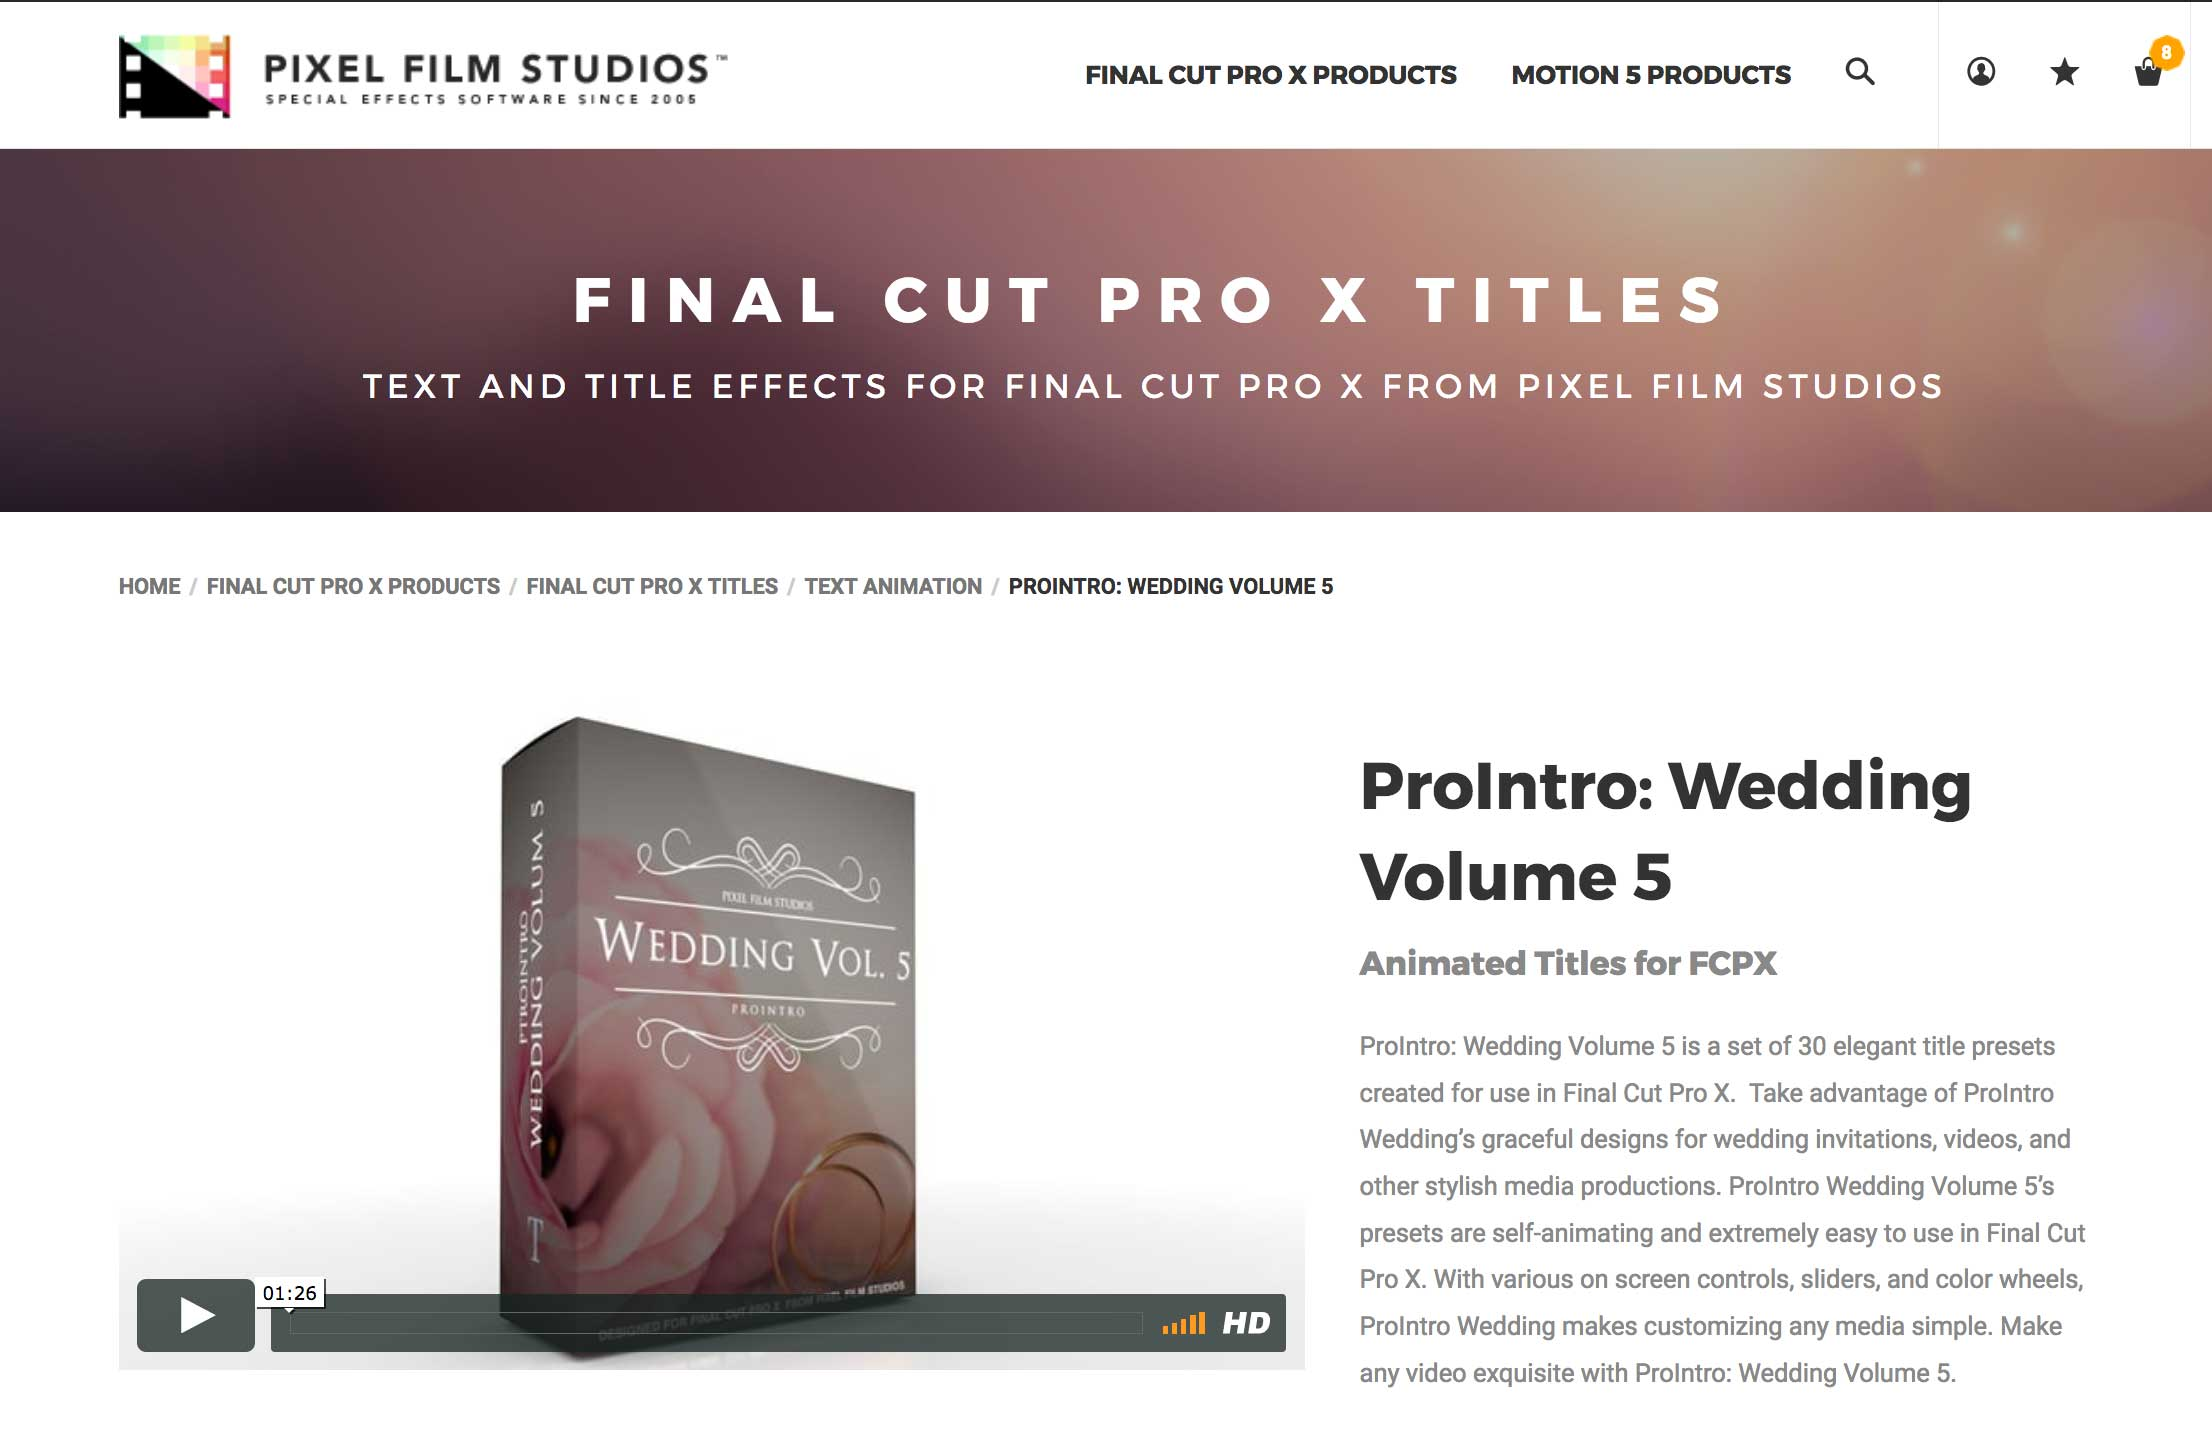 A New FCPX Plugin was released called ProIntro Wedding Volume 5